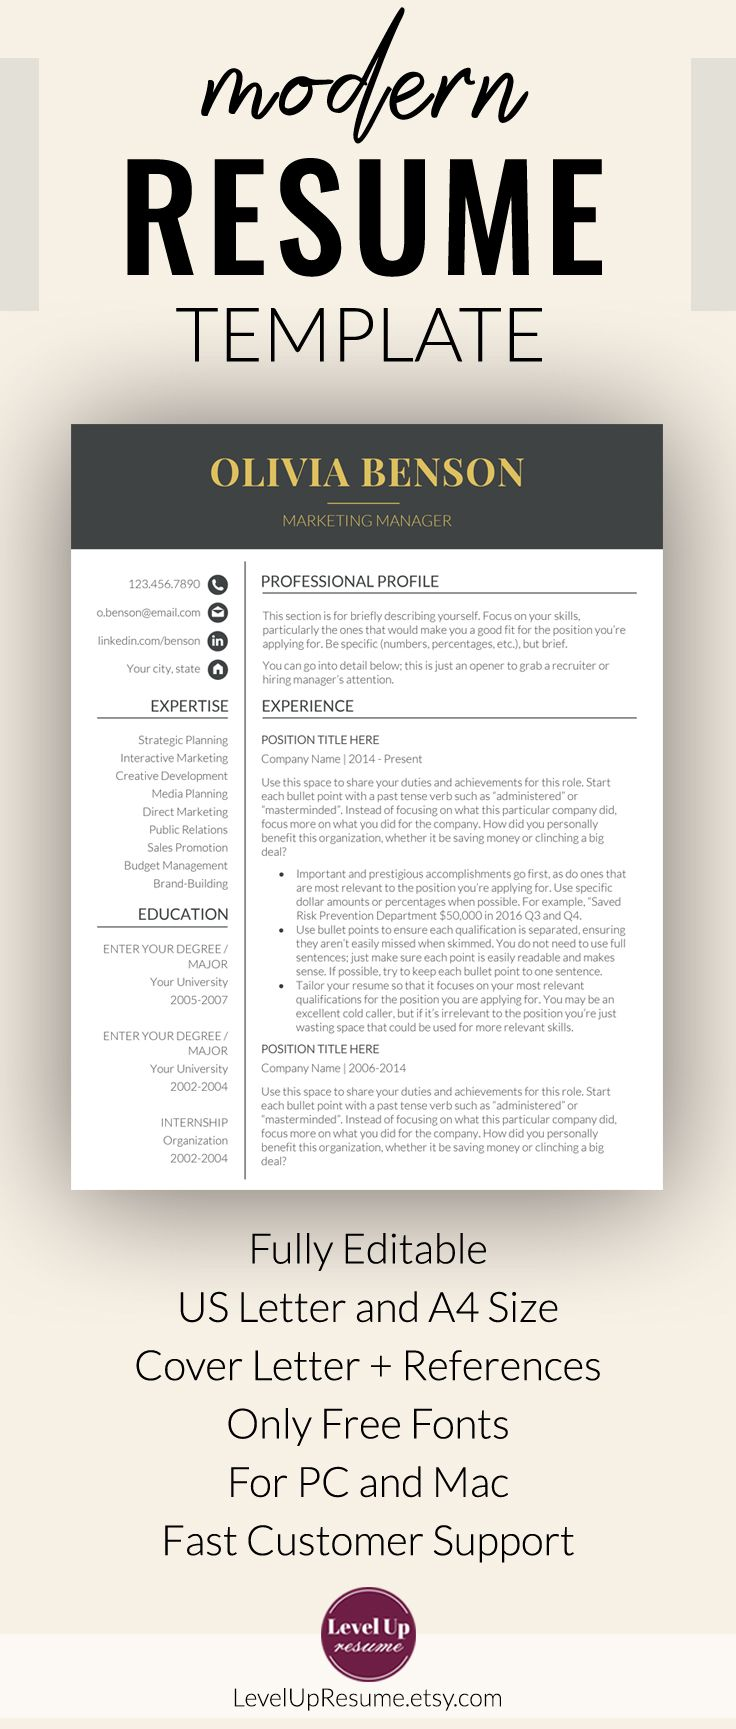 Professional Resume Template For Microsoft Word Olivia Benson